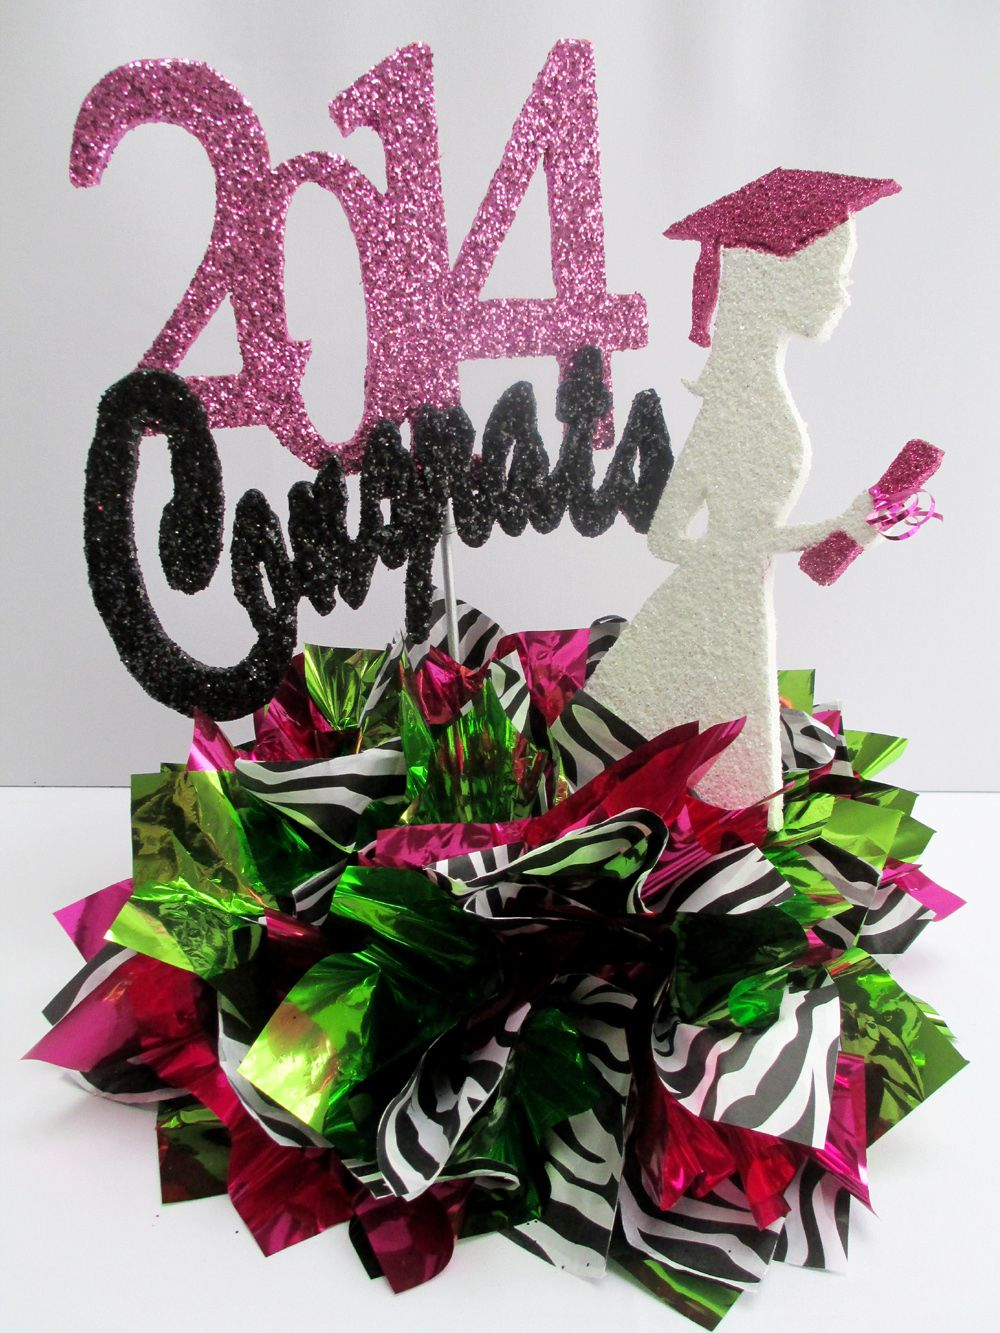 2014 graduation decorations - In The First Picture We Feature The Table Centerpiece With Our Custom Horizontal 2014 And Just Graduation Centerpiecetable Centerpiecesgraduation